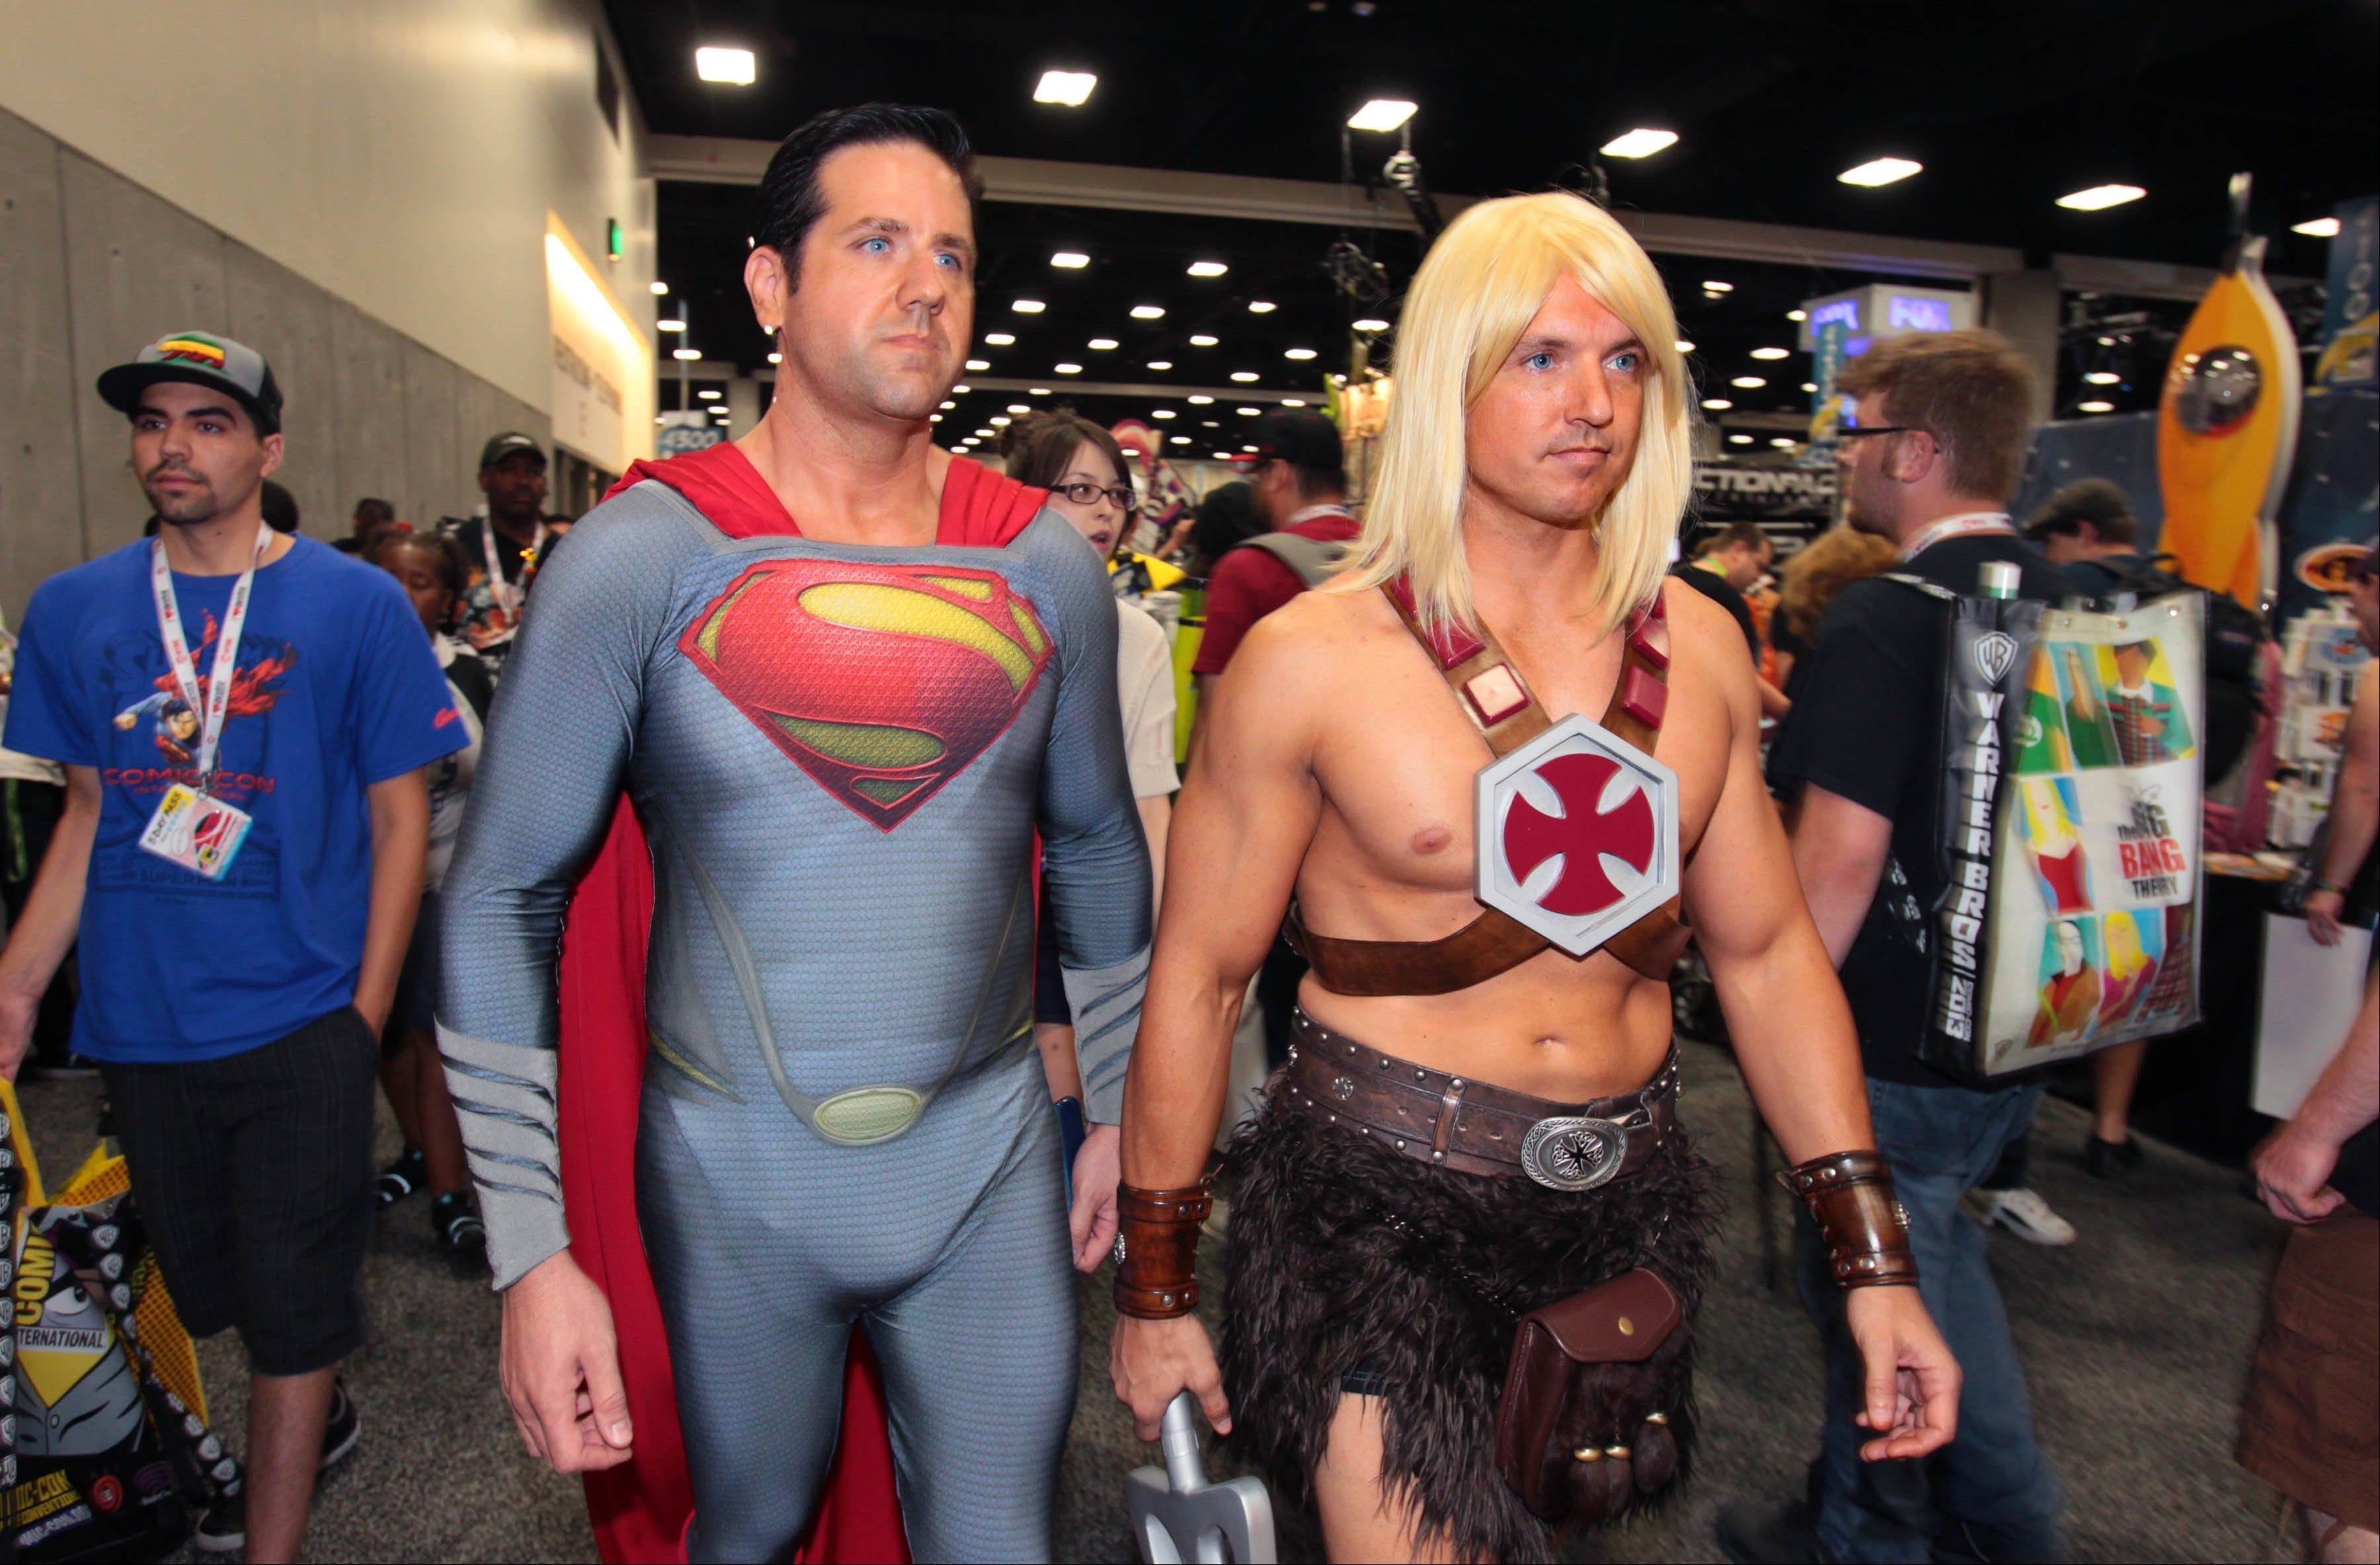 In this Thursday, July 18, 2013 photo, Arizona natives Trey Moore, left, dressed as Superman, and Ben Dickinson, dressed as He-Man, walk through the main exhibit hall at Comic-Con International in San Diego.